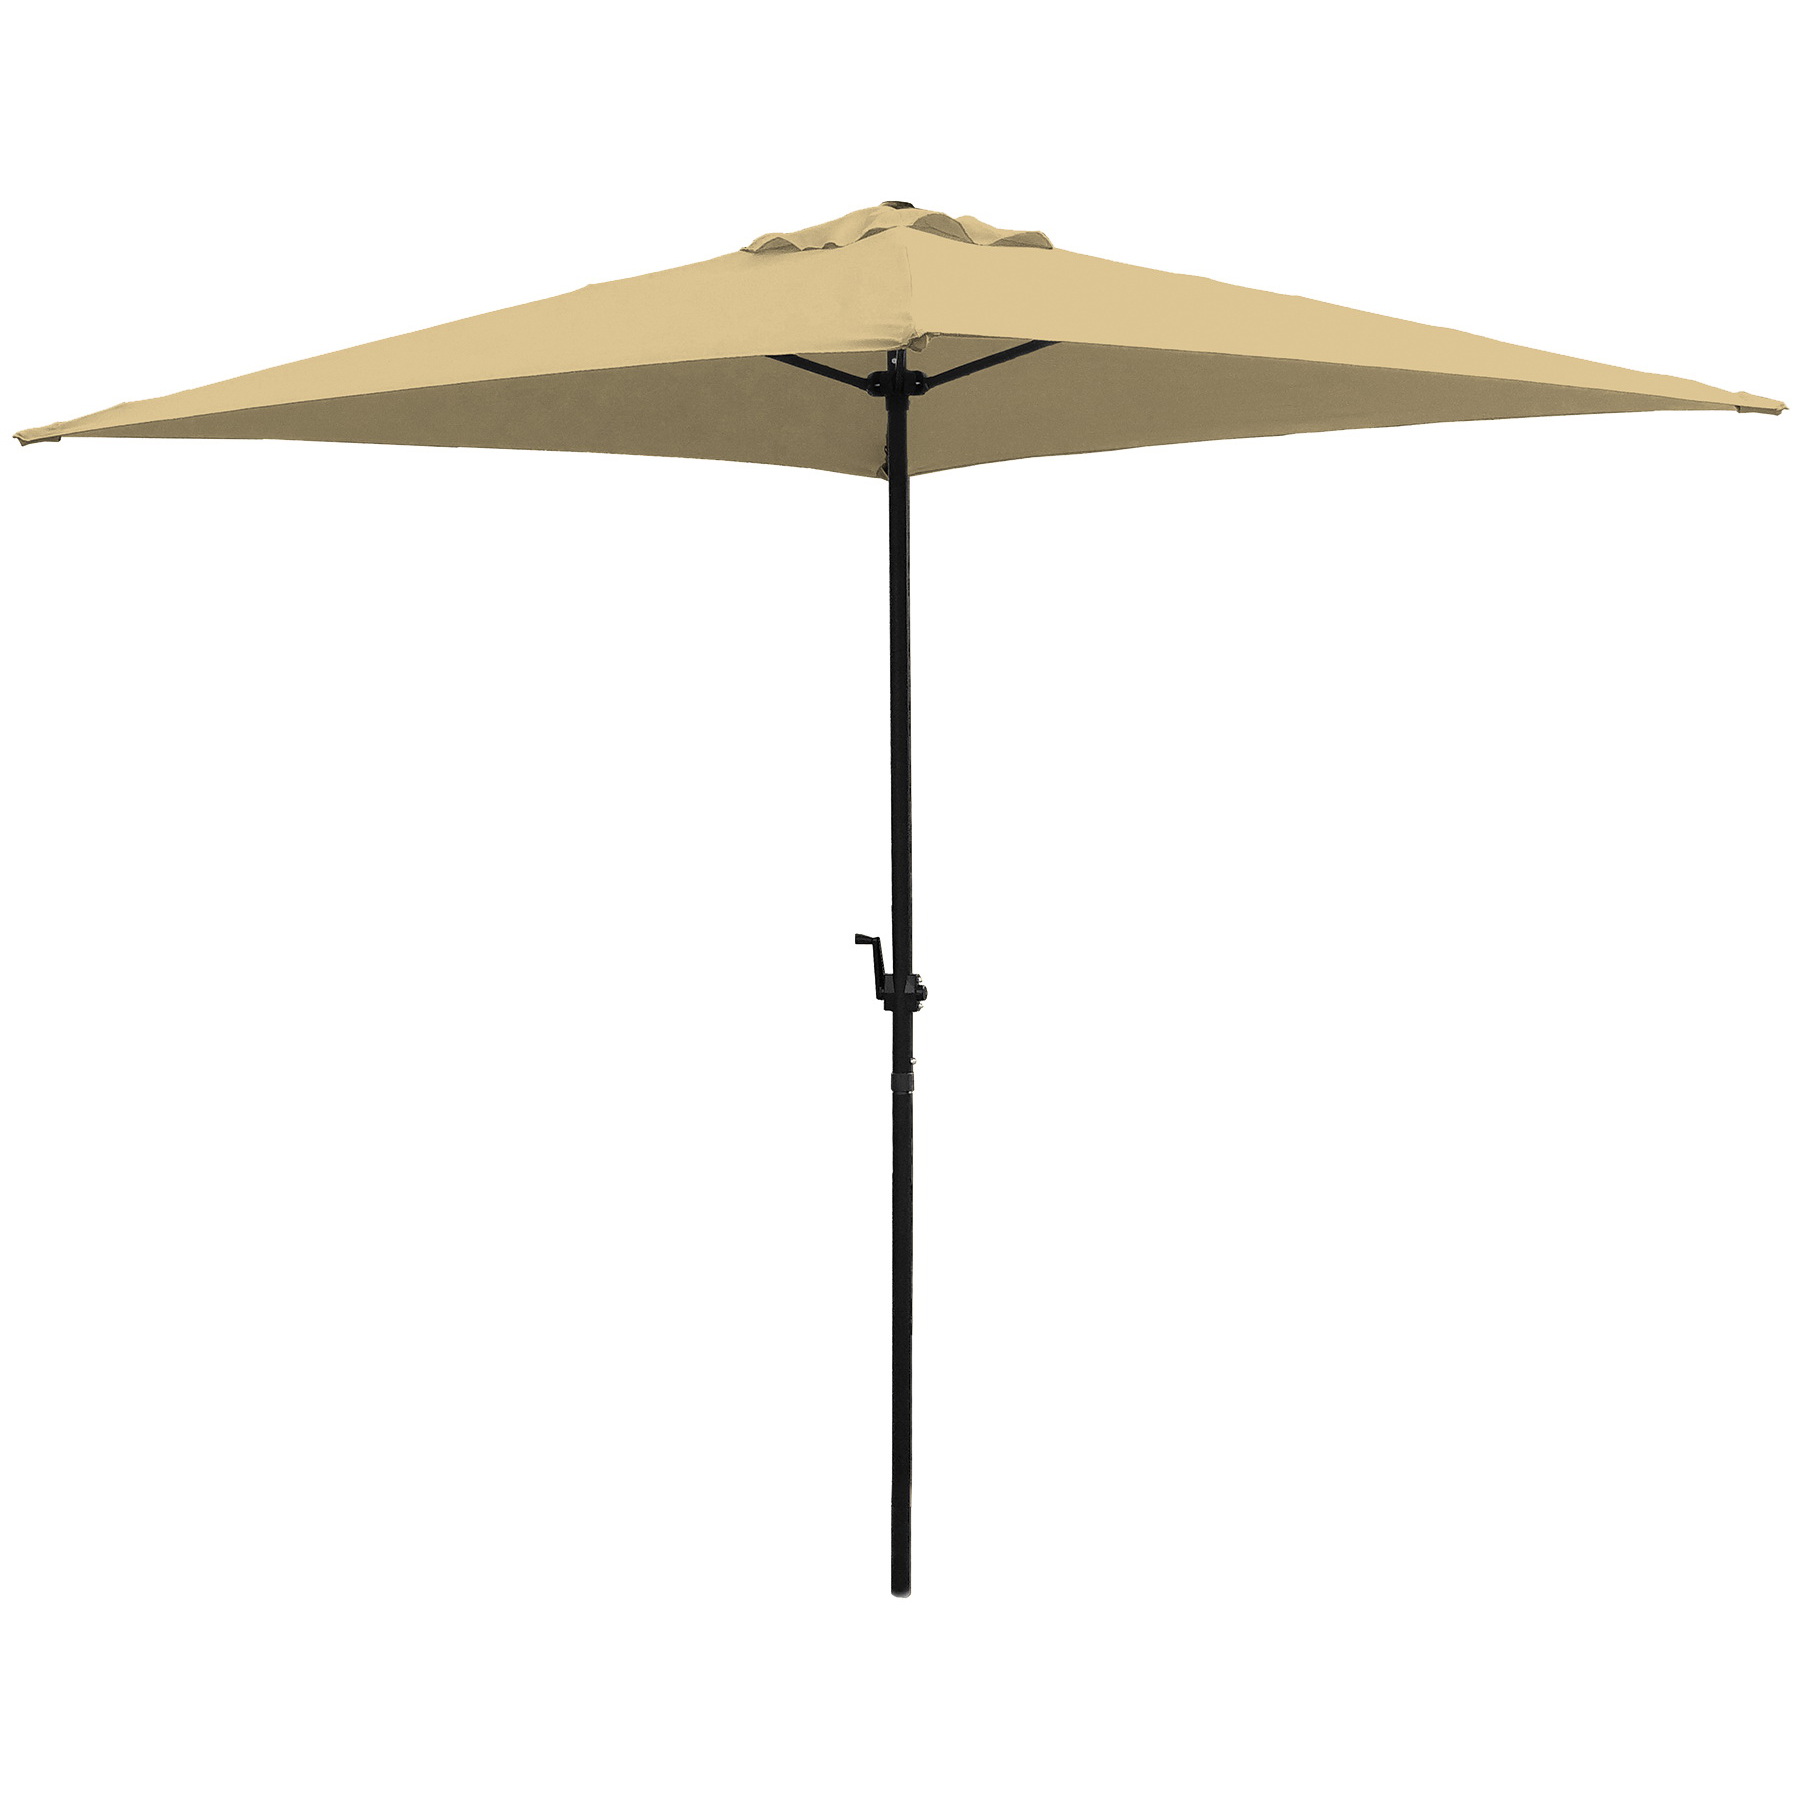 Picture of Seasonal Trends UMQ65BKOBD-04 Umbrella, 7.8 ft H, 6.5 ft W Canopy, 6.5 ft L Canopy, Square Canopy, Steel Frame